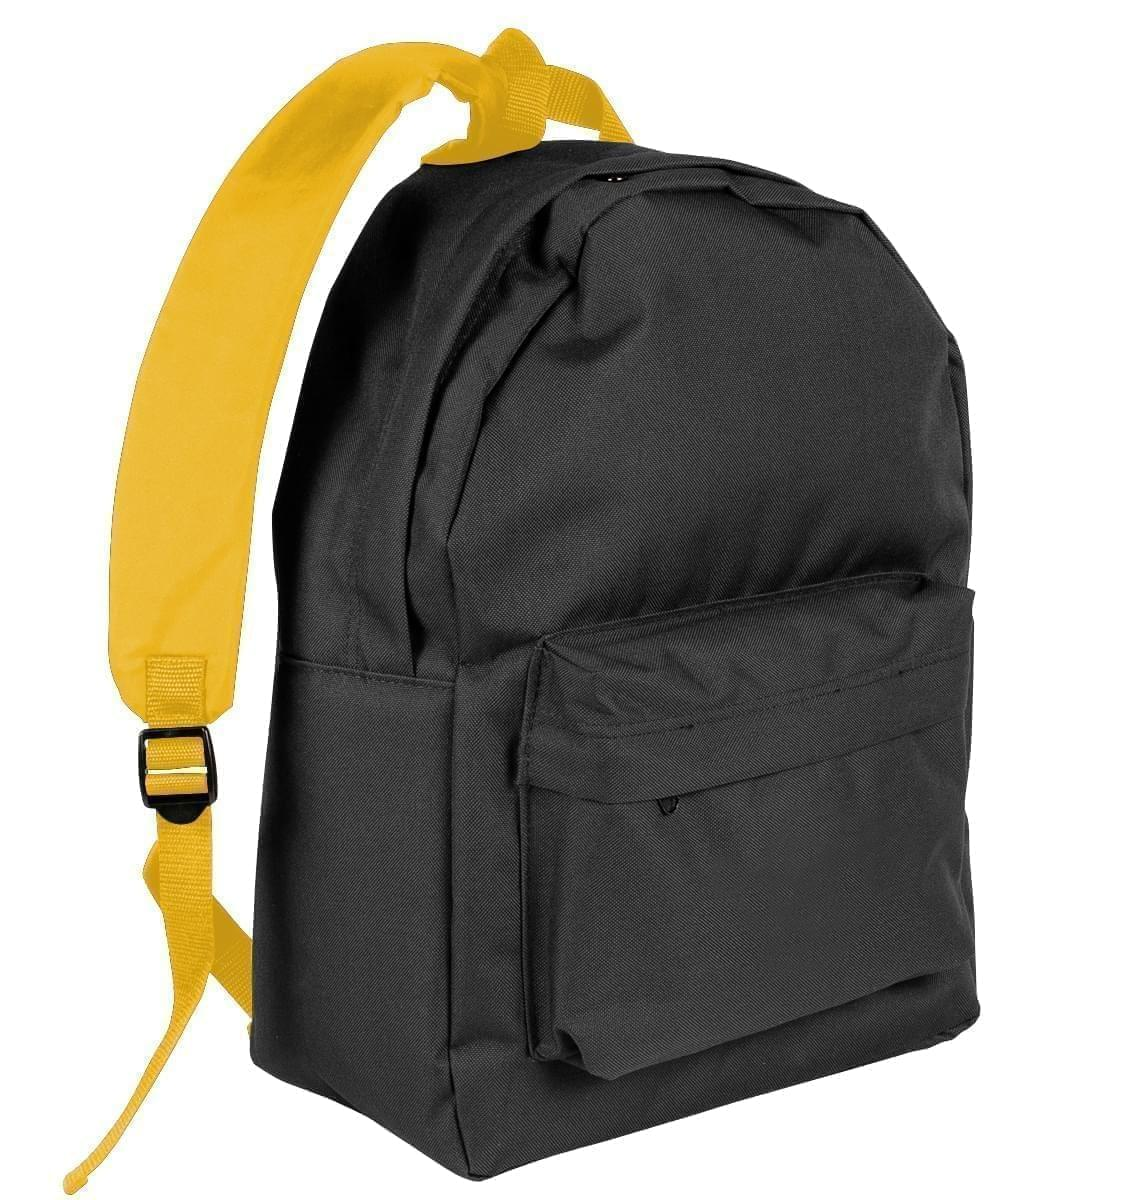 USA Made Nylon Poly Backpack Knapsacks, Black-Gold, 8960-AO5